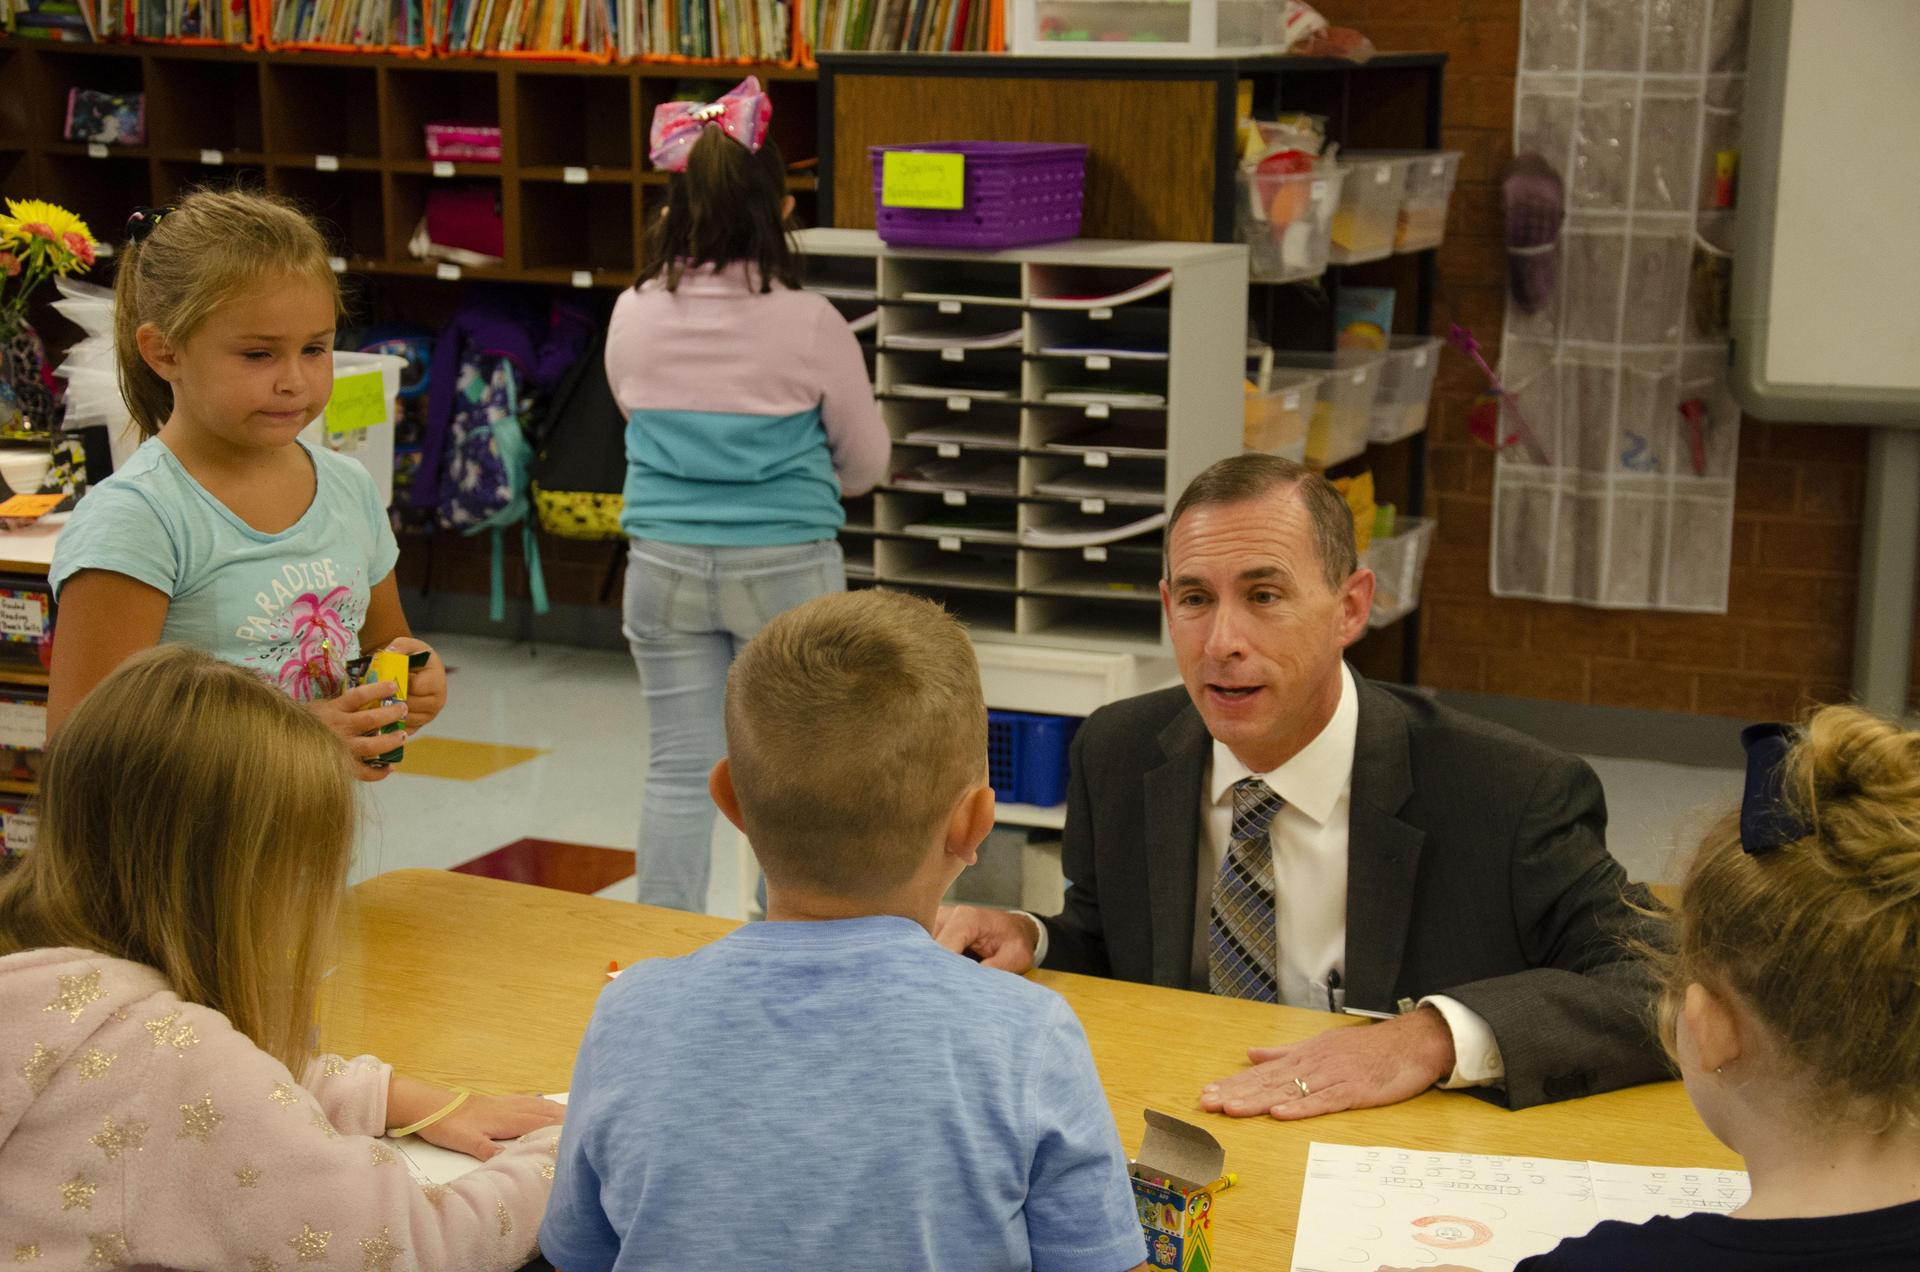 Dr. Sutton visits Harris Elementary School